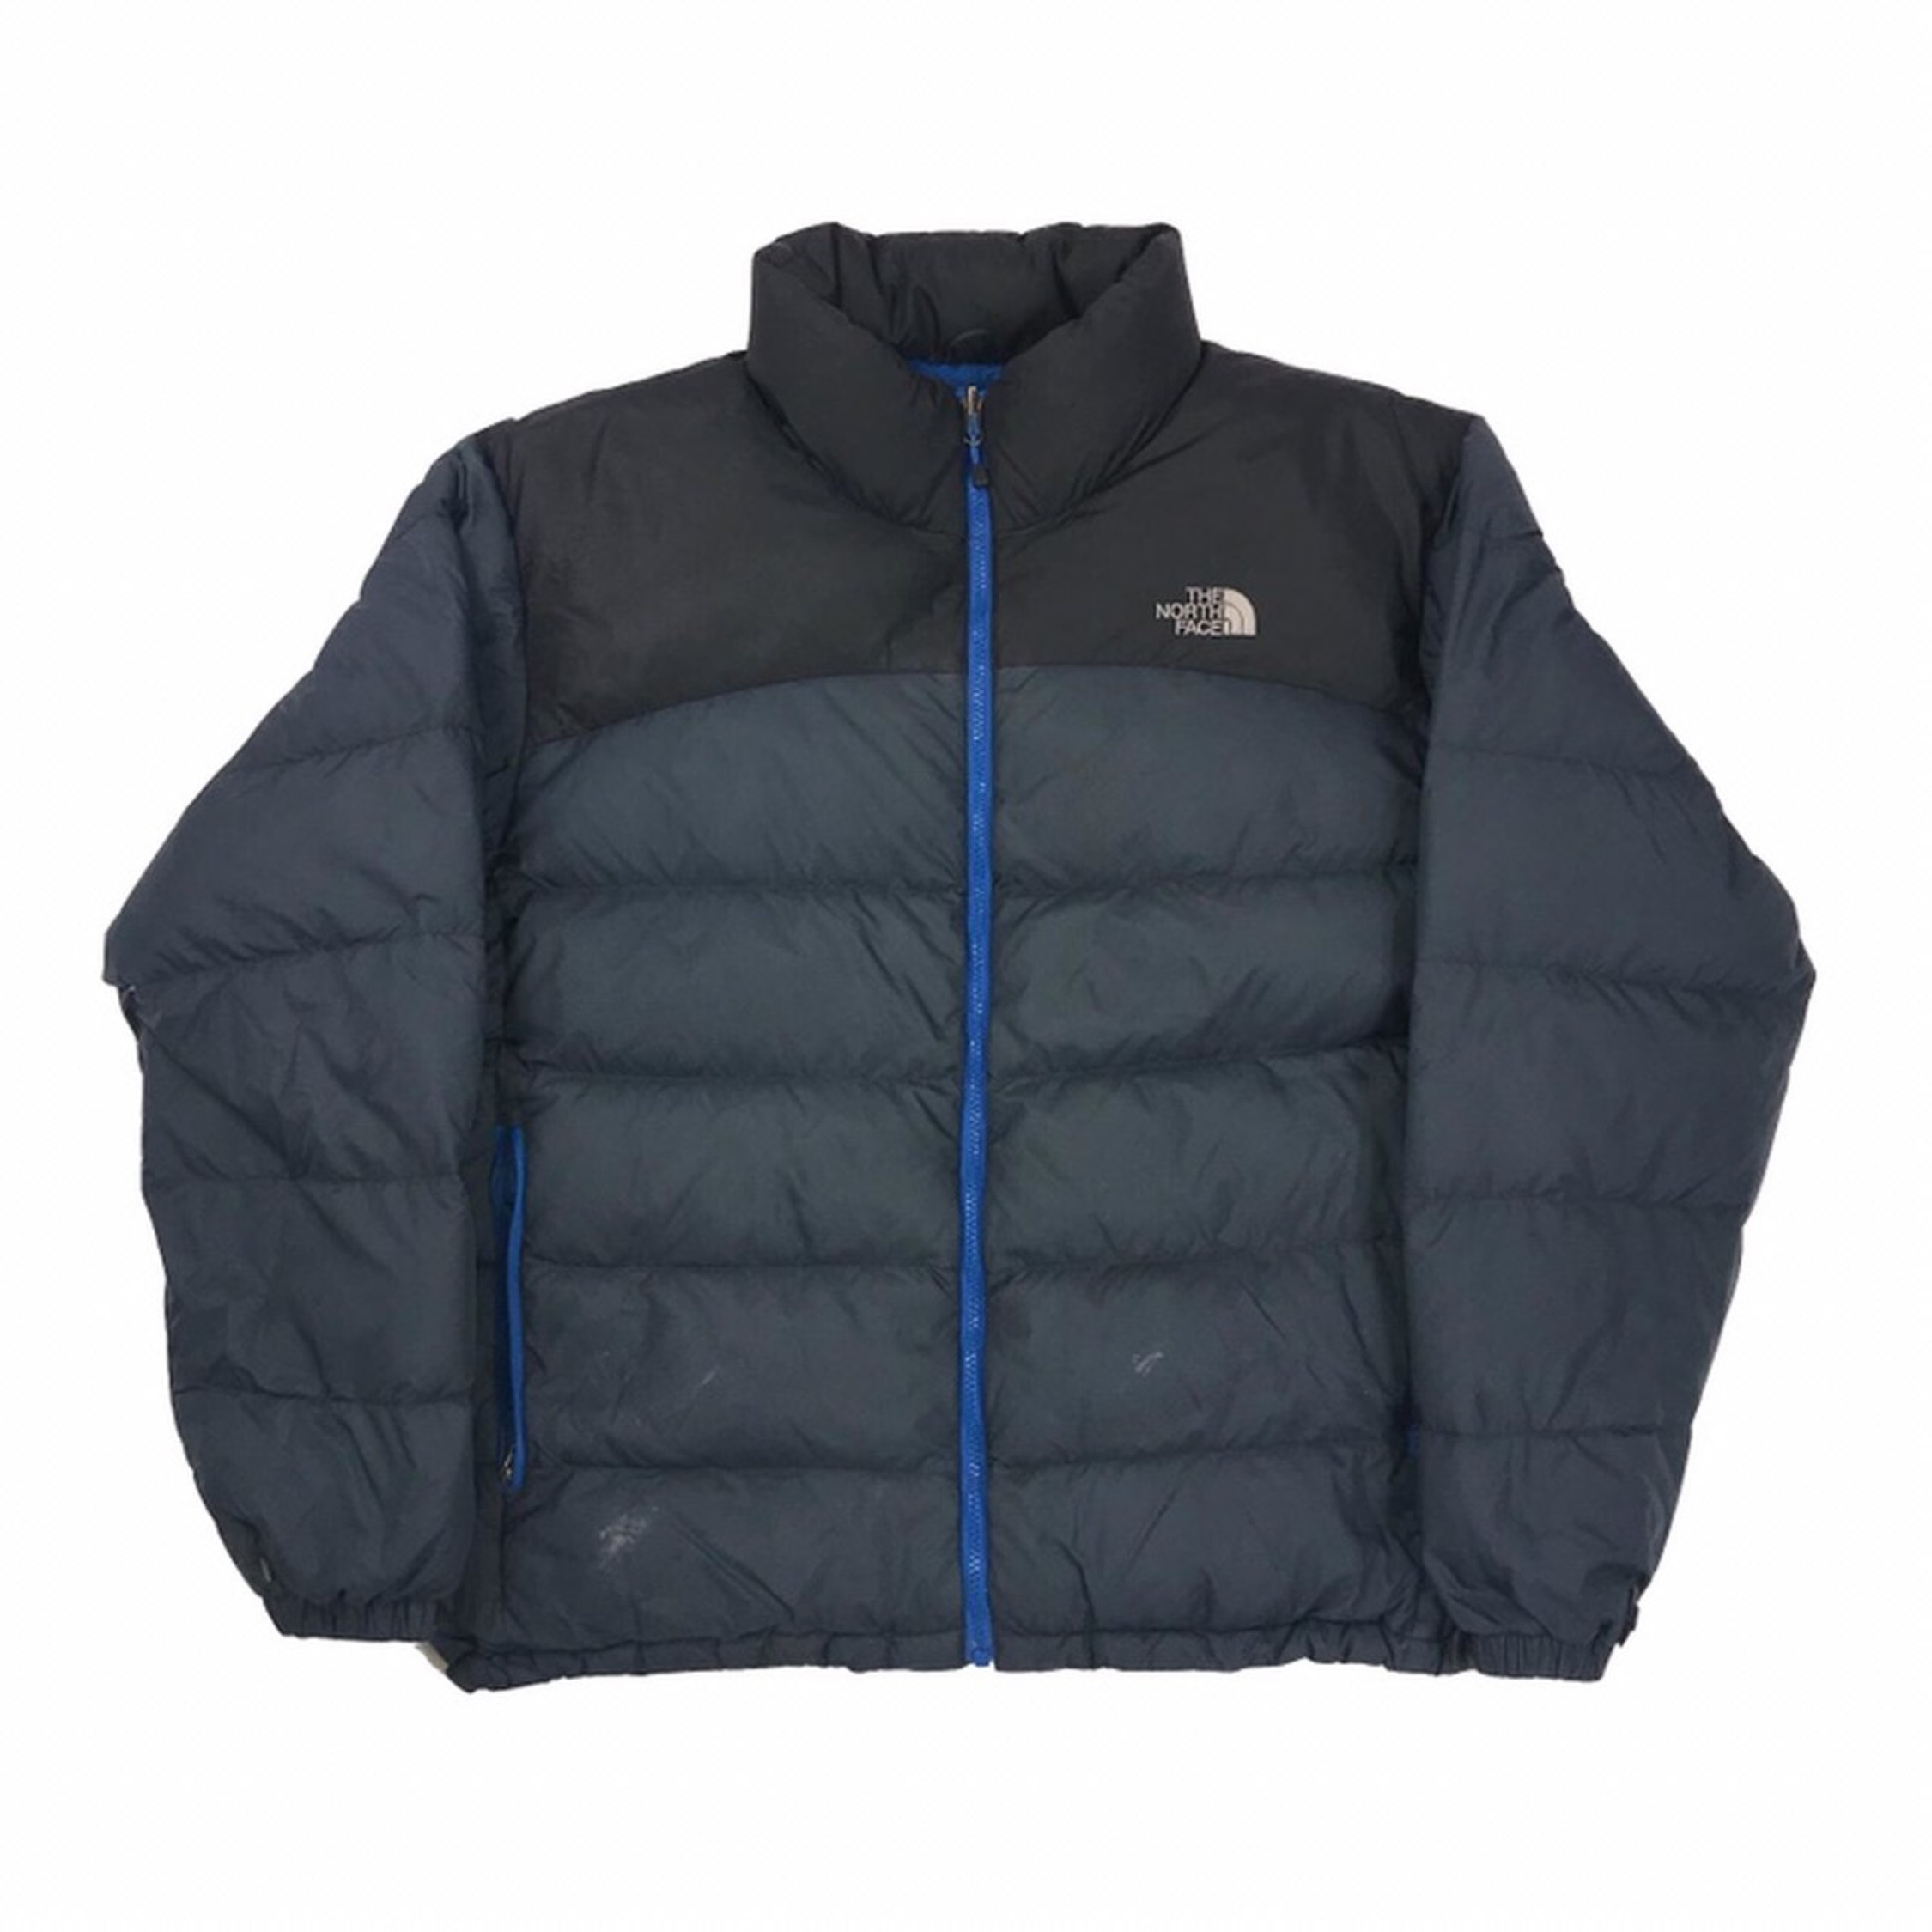 2ac1f10ef The North Face Nuptse Puffer Jacket